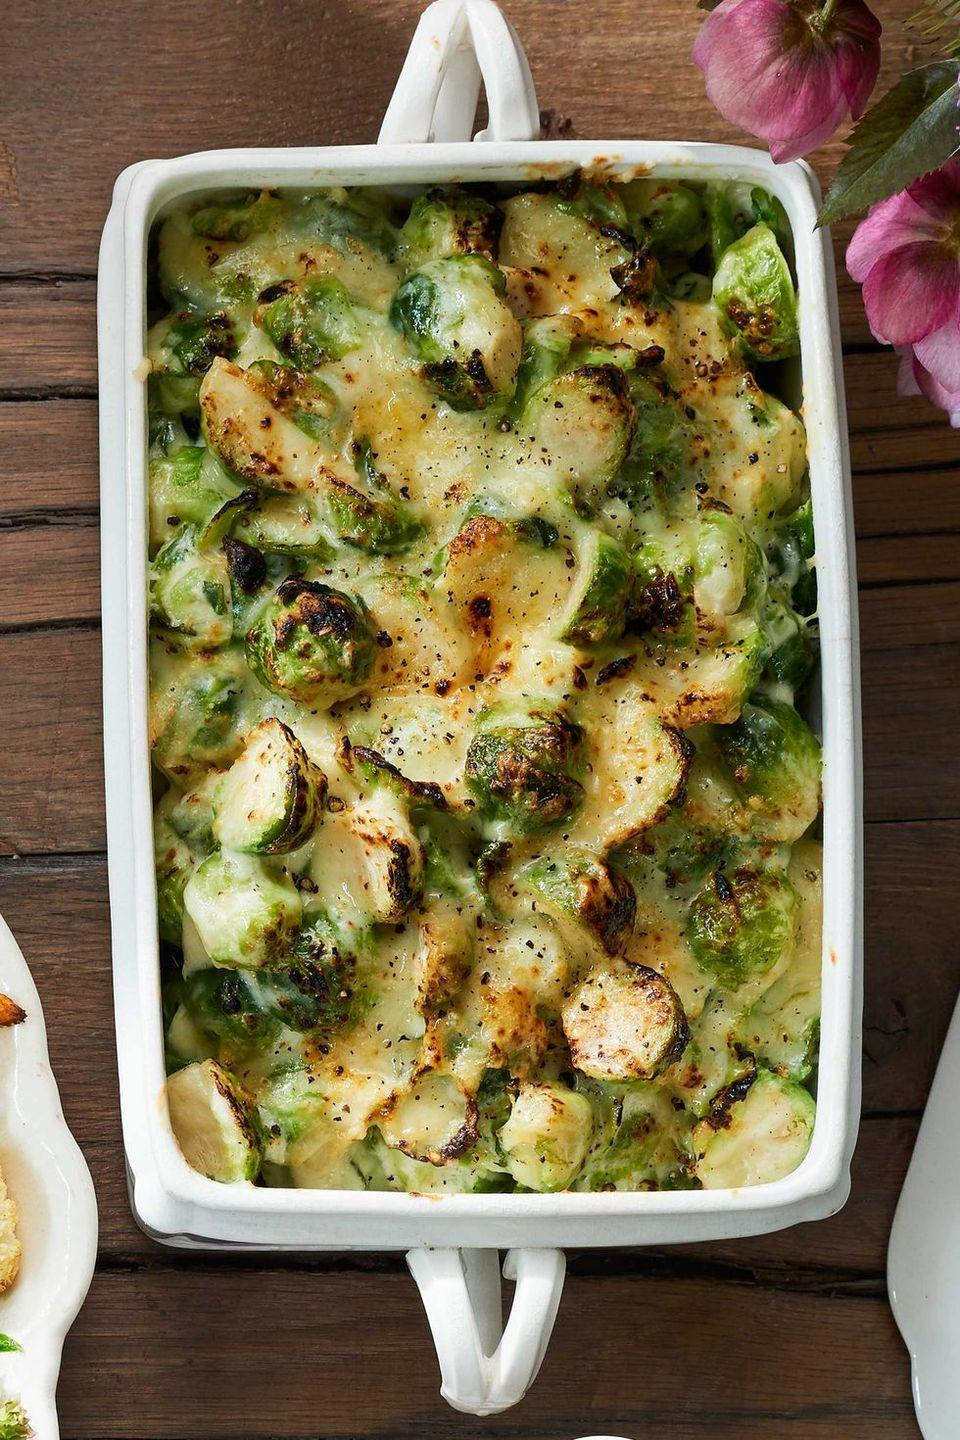 "<p>Cheesy, baked Brussels sprouts make a crowd-pleasing holiday side.</p><p><strong><a href=""https://www.countryliving.com/food-drinks/recipes/a40027/brussels-sprouts-gratin/"" rel=""nofollow noopener"" target=""_blank"" data-ylk=""slk:Get the recipe"" class=""link rapid-noclick-resp"">Get the recipe</a>.</strong></p><p><a class=""link rapid-noclick-resp"" href=""https://www.amazon.com/REGALO-HW1224-Rectangular-Stoneware-13-5x8-25x2-5/dp/B07LBT6DHM/?tag=syn-yahoo-20&ascsubtag=%5Bartid%7C10050.g.896%5Bsrc%7Cyahoo-us"" rel=""nofollow noopener"" target=""_blank"" data-ylk=""slk:SHOP BAKING DISHES"">SHOP BAKING DISHES</a></p>"